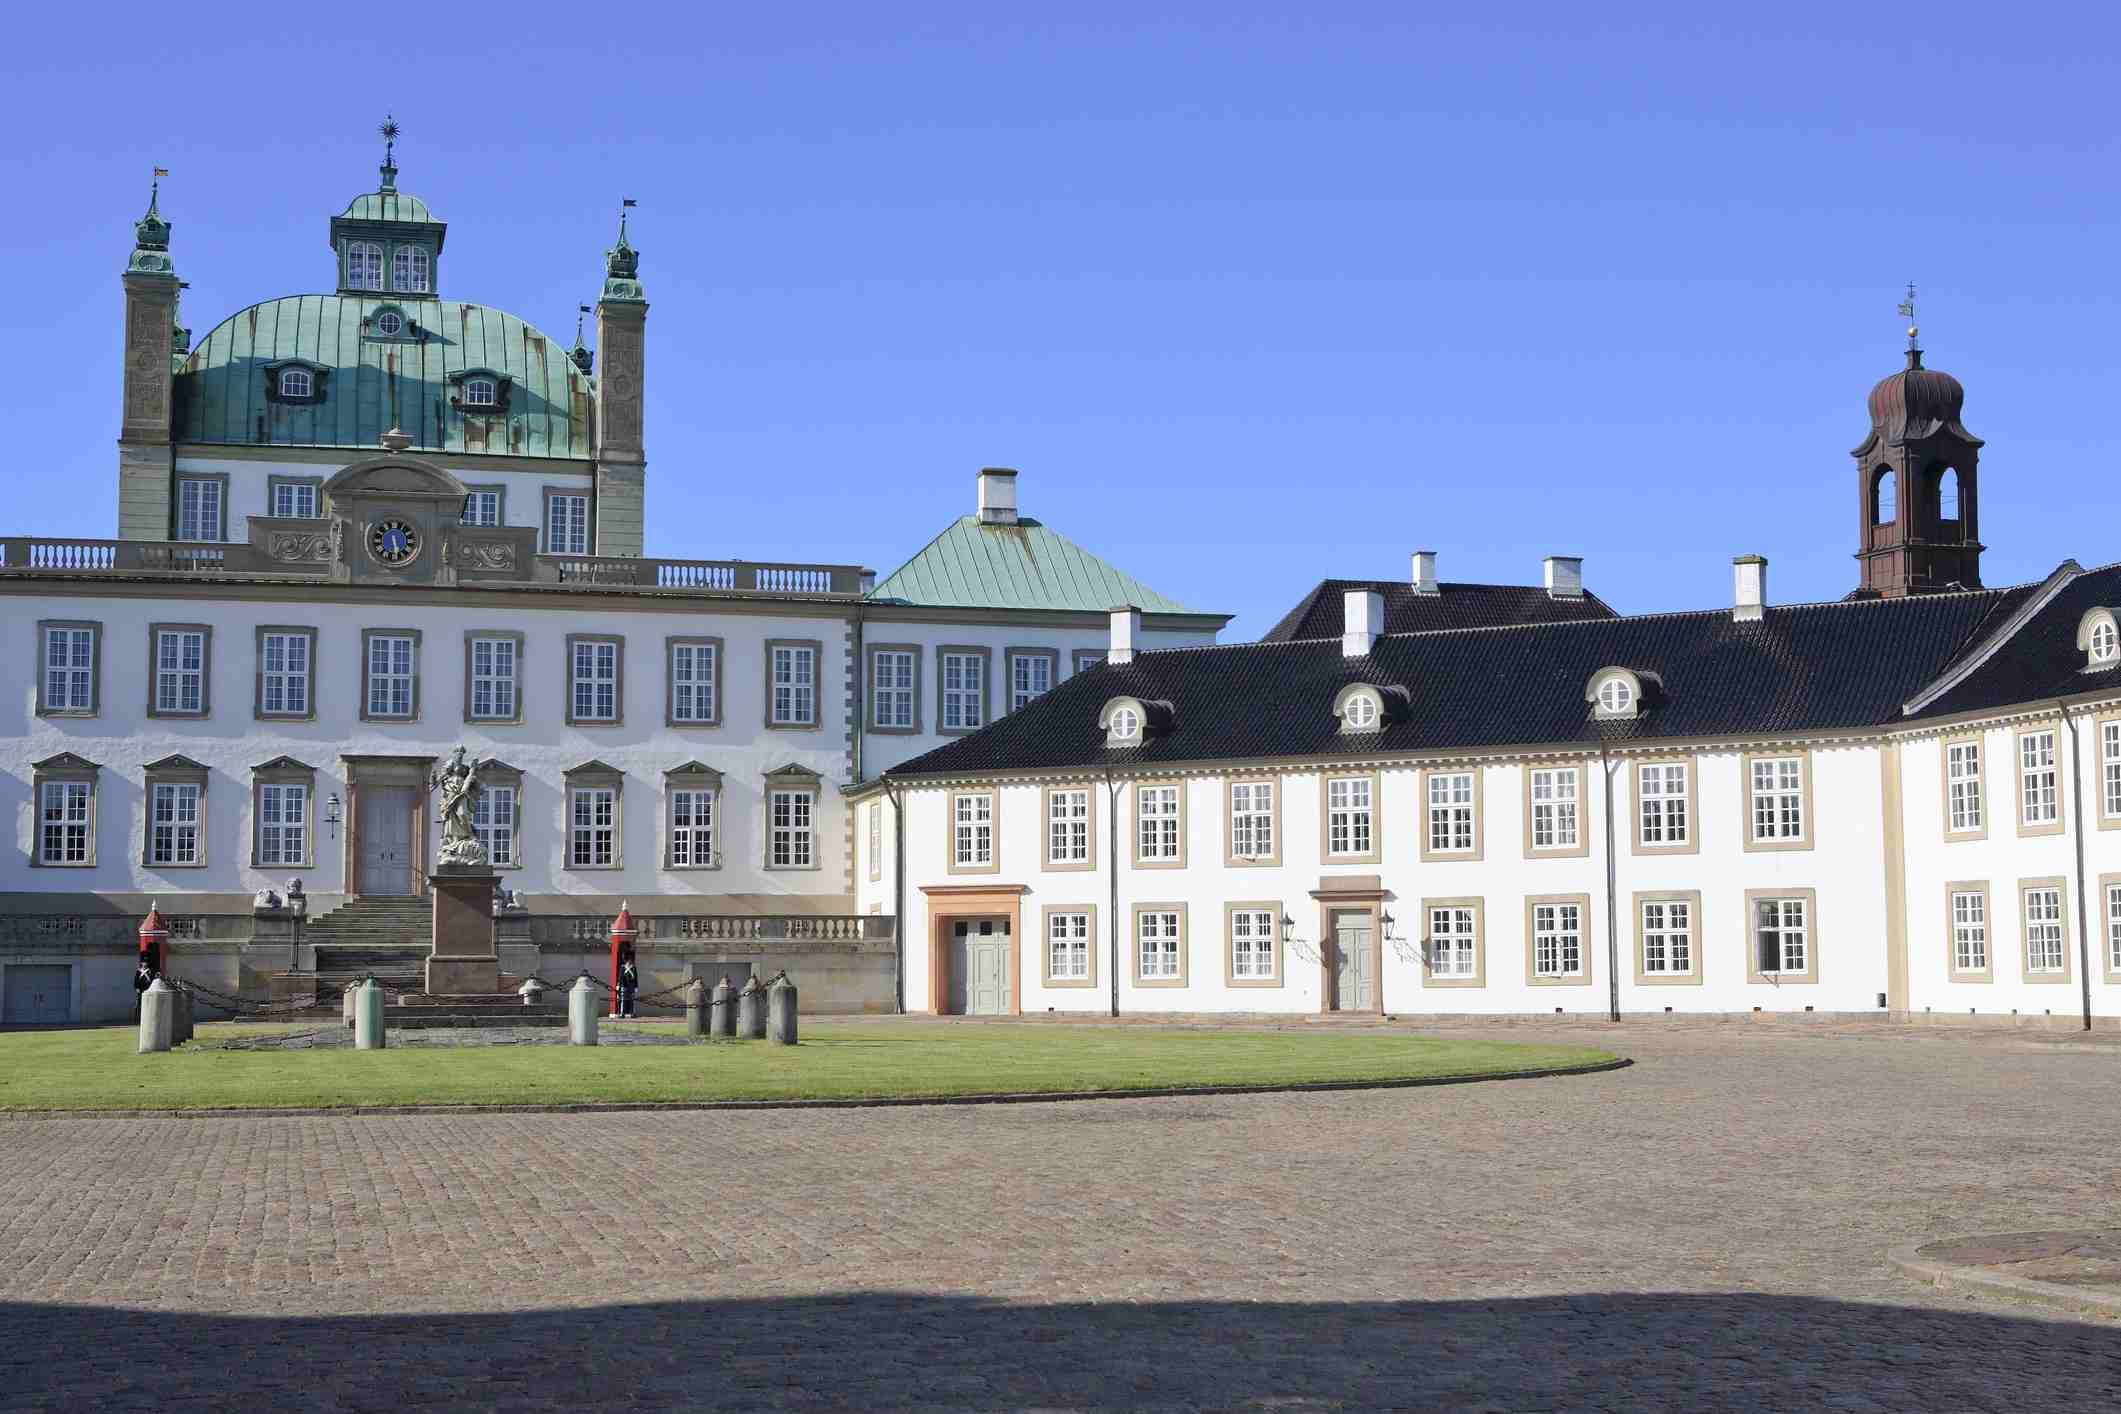 Fredensborg palace and park